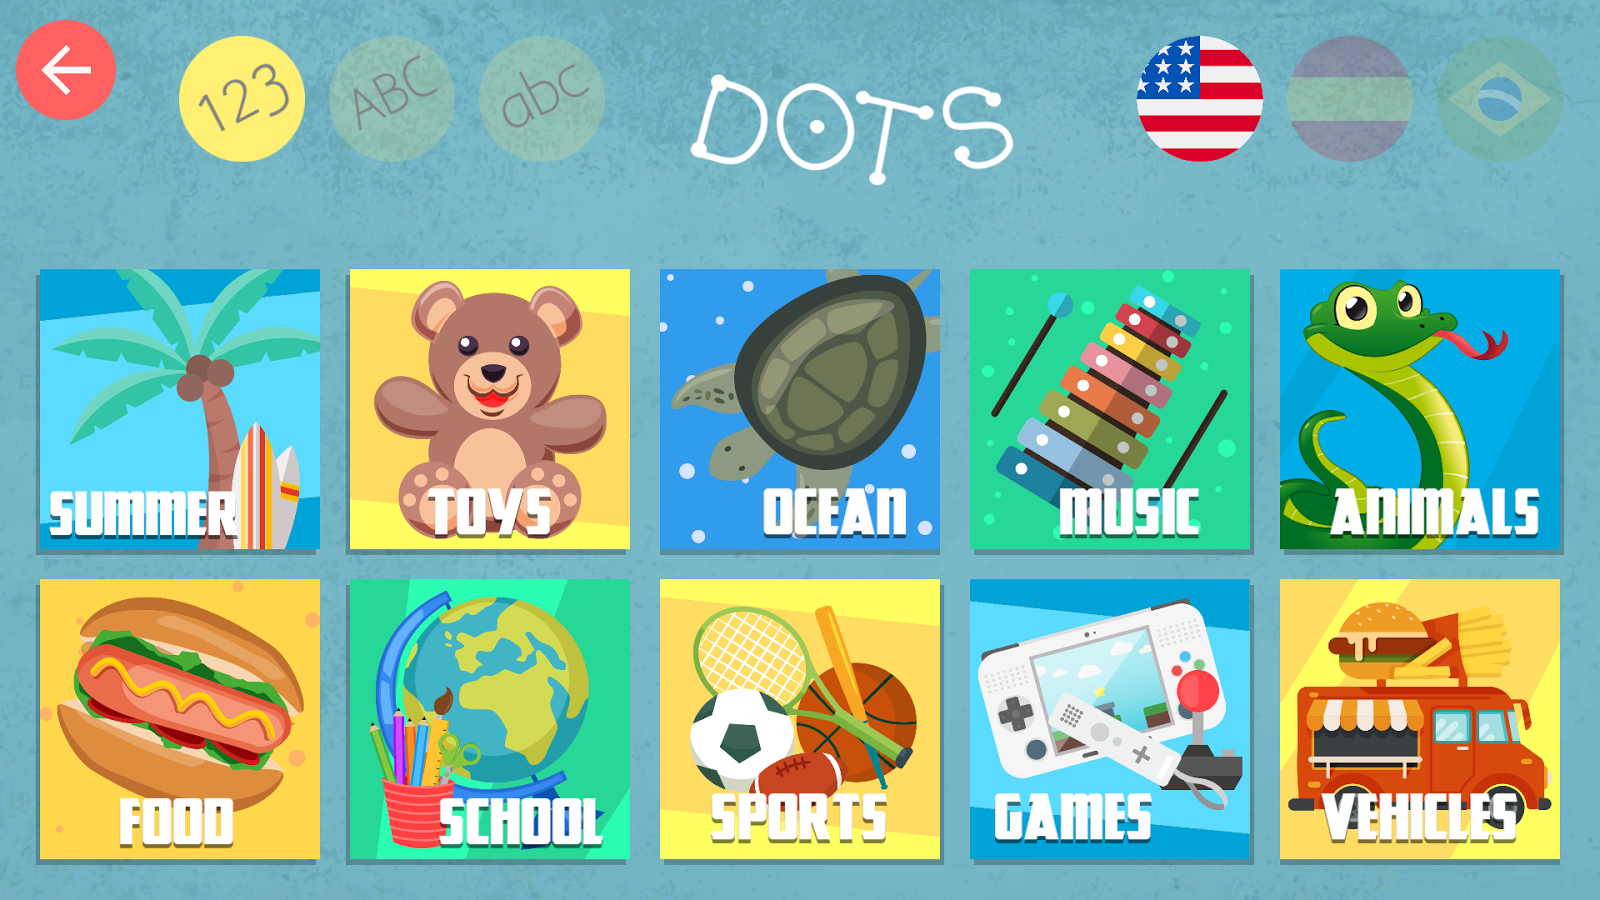 Kids Dots 1 0 APK Download Android Educational Games